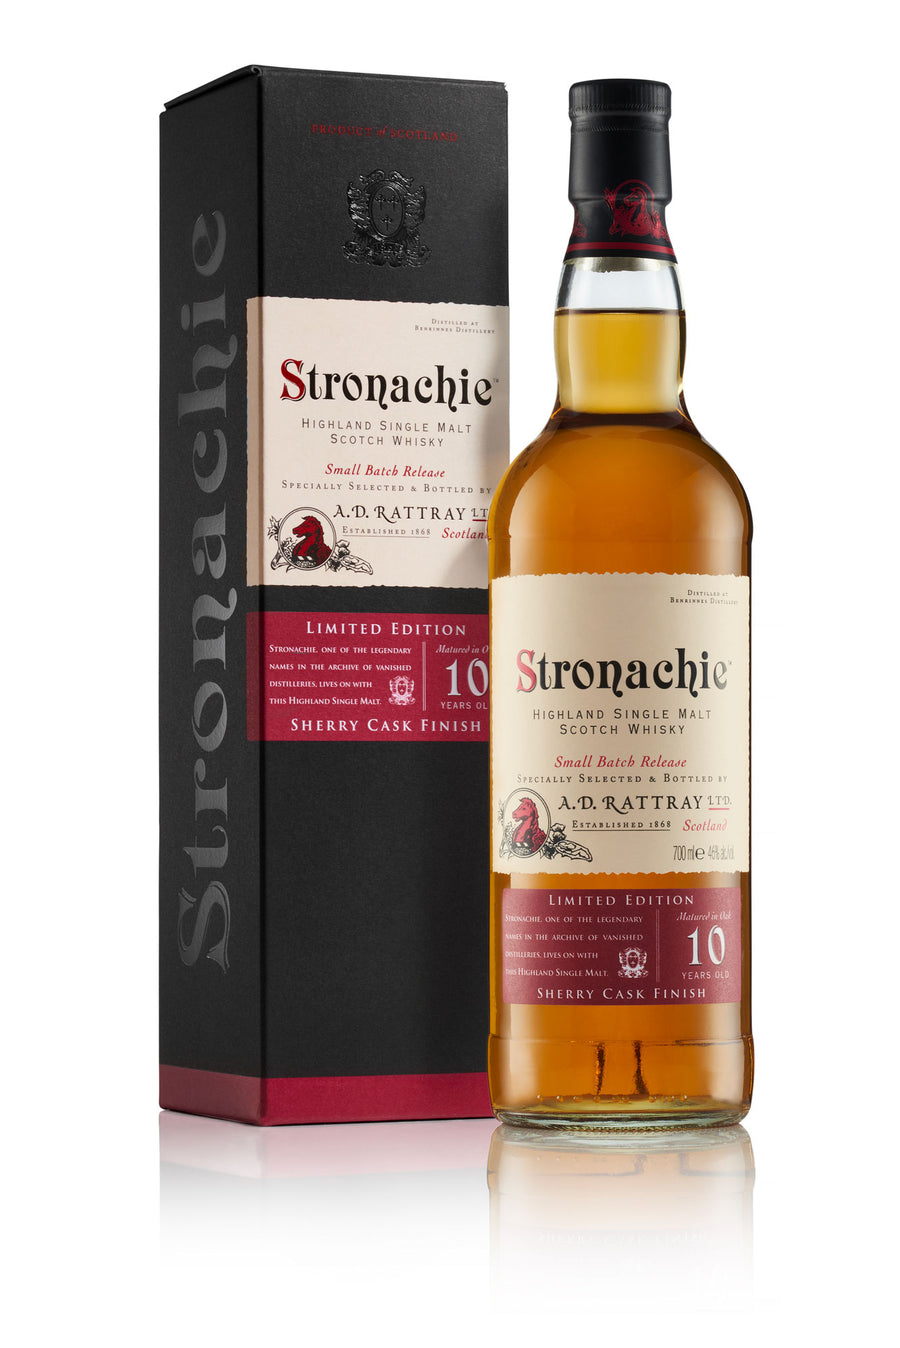 Stronachie Sherry Edition Single Malt Scotch Whisky